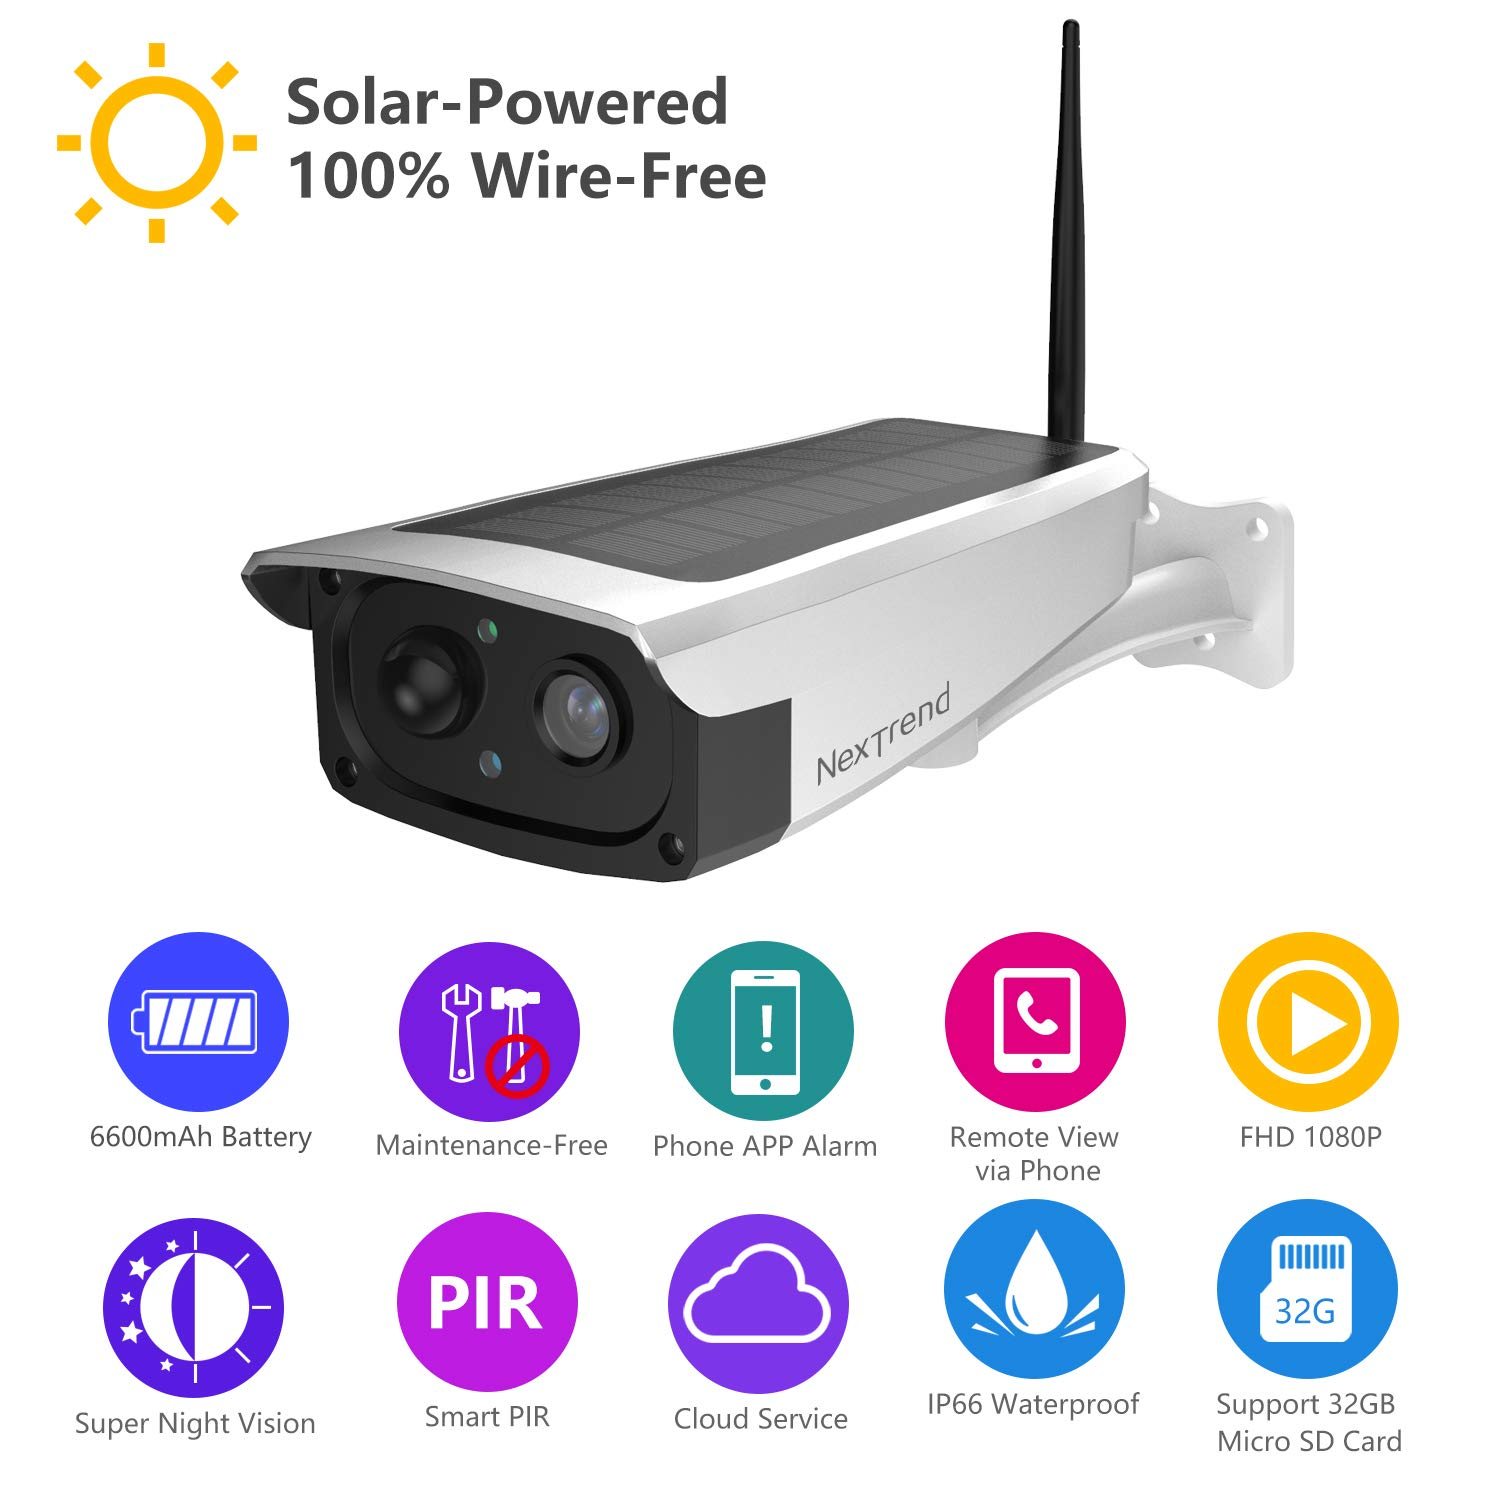 Solar Powered Outdoor Battery Security Camera, NexTrend 1080P Home Wireless WiFi IP Cam w/Build-in 6600mAh Battery, PIR Alarm Alerts, Night Vision, Two-Way Audio, Support TF Card& Cloud Service by NexTrend